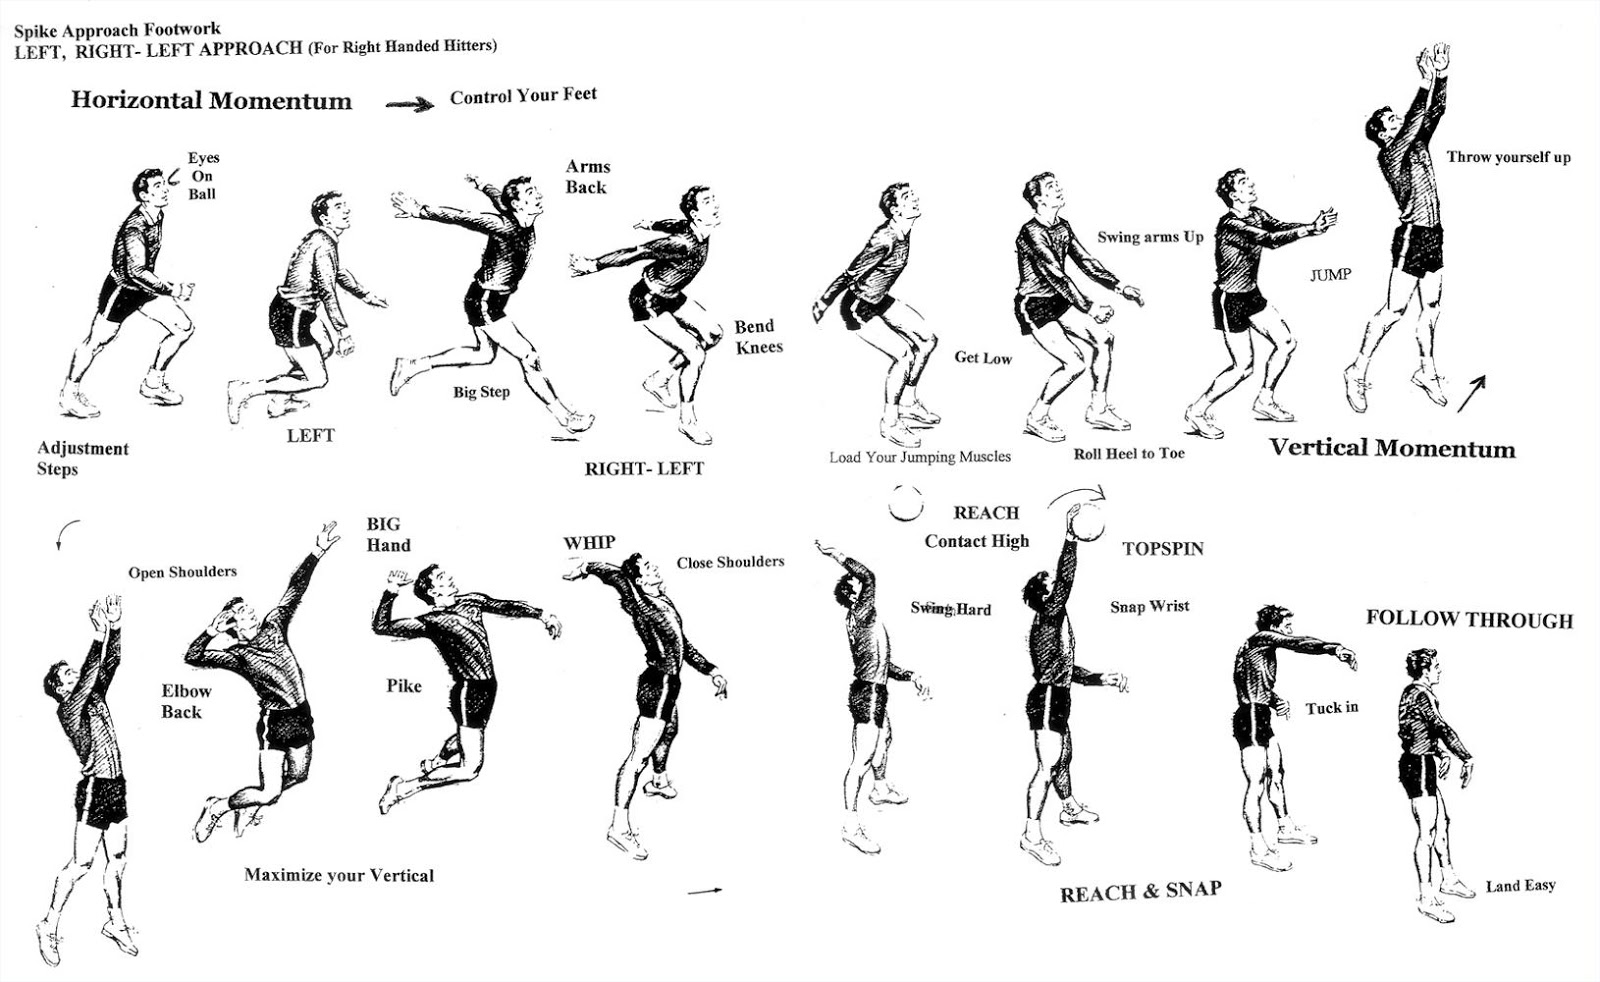 an introduction to the many ways of the tennis serve There are many ways to imitate an under pressure serve situation one of these drills to improve the tennis serve is to start every set with a 4 all (4-4) score this puts you under pressure to serve well in your service game because every single point is vital for you to win the set.